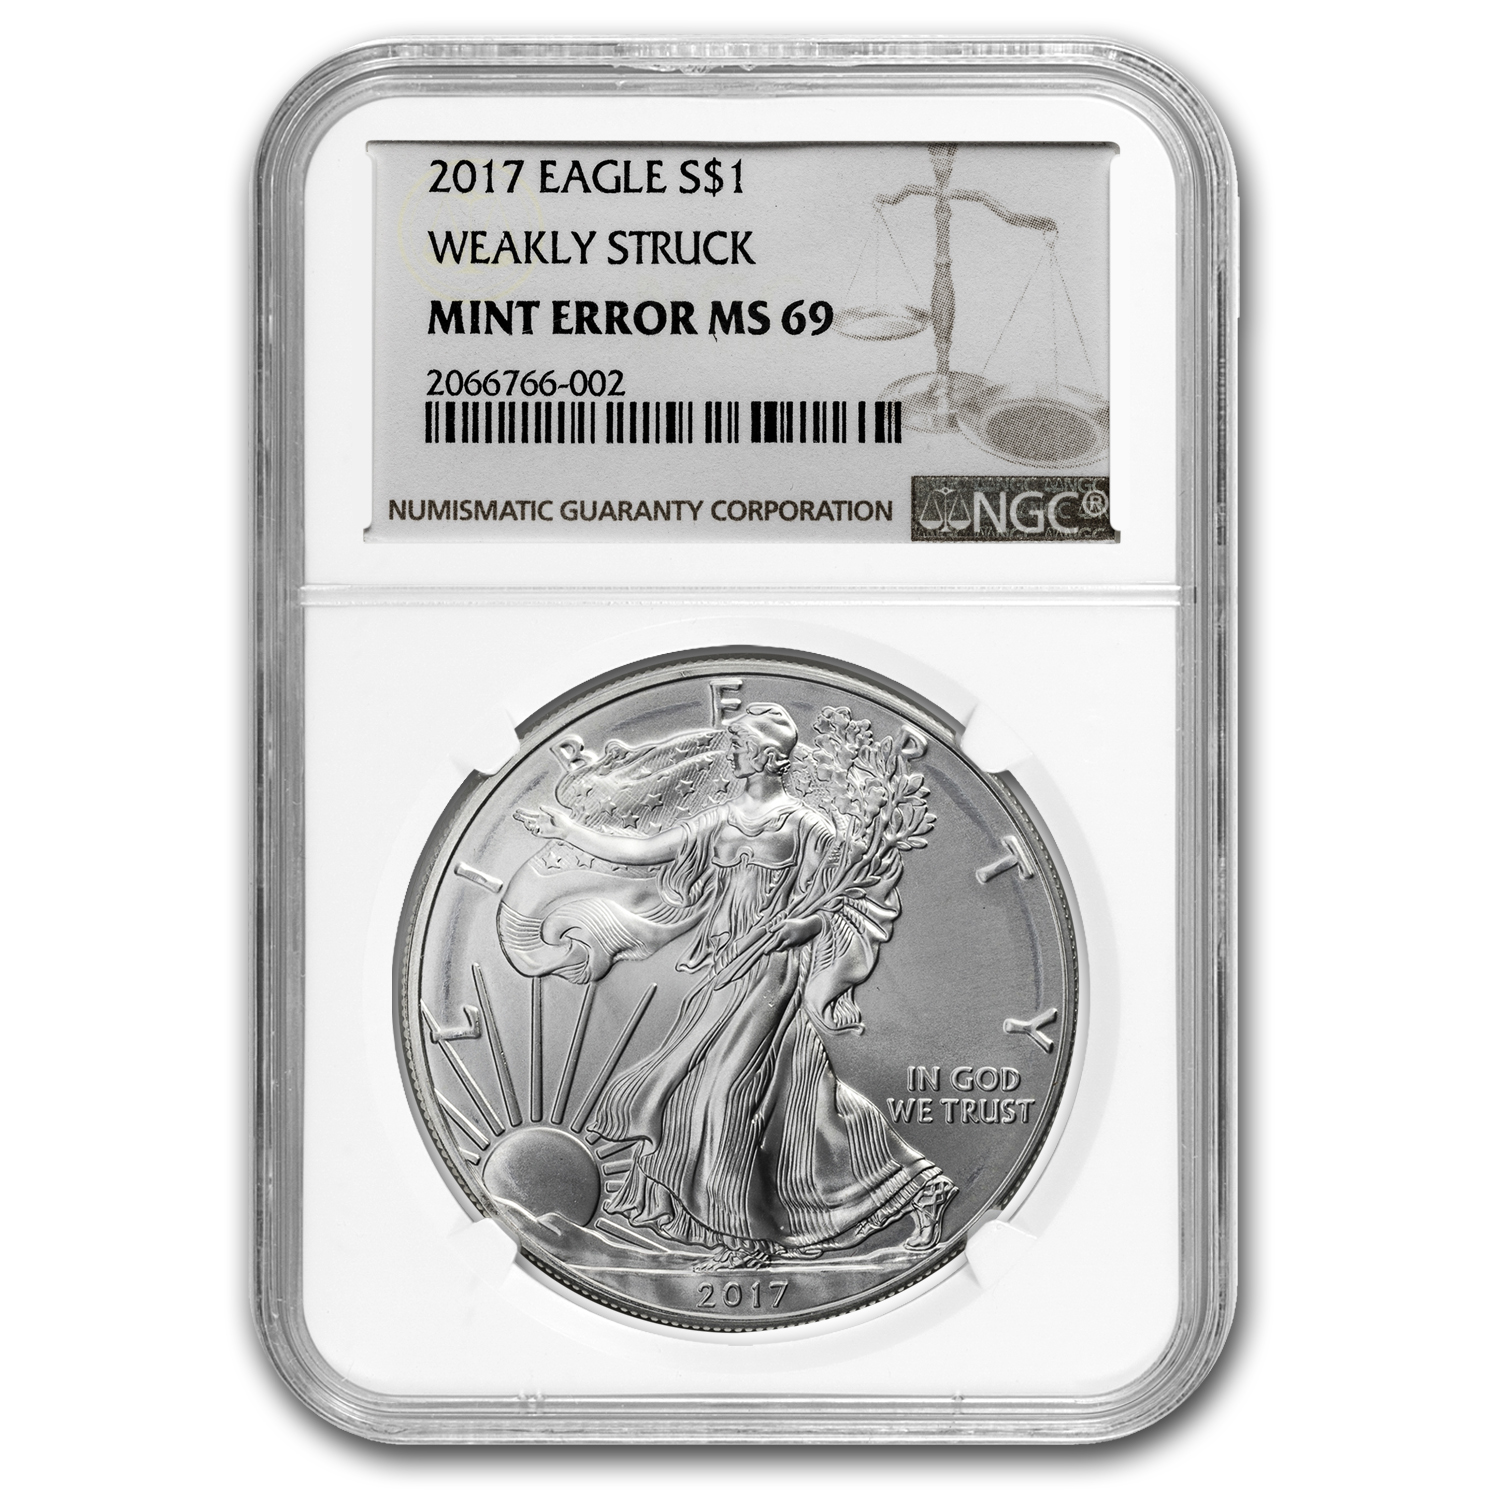 2017 Silver American Eagle MS-69 NGC (Error, Weakly Struck)